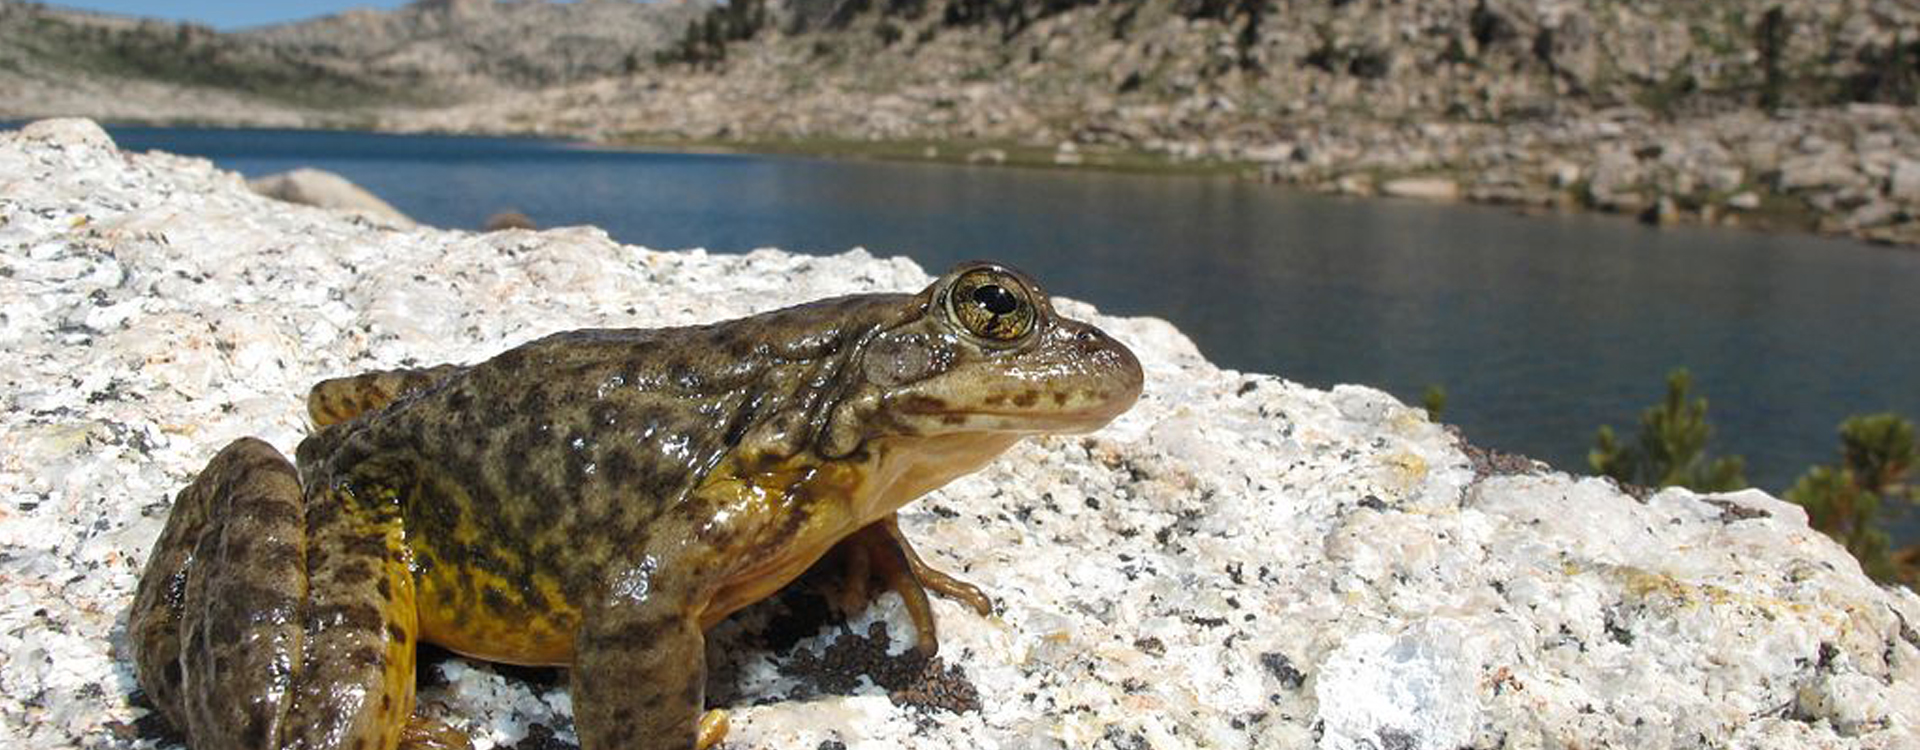 Protecting Amphibians in the Sierra Nevada's Meadows